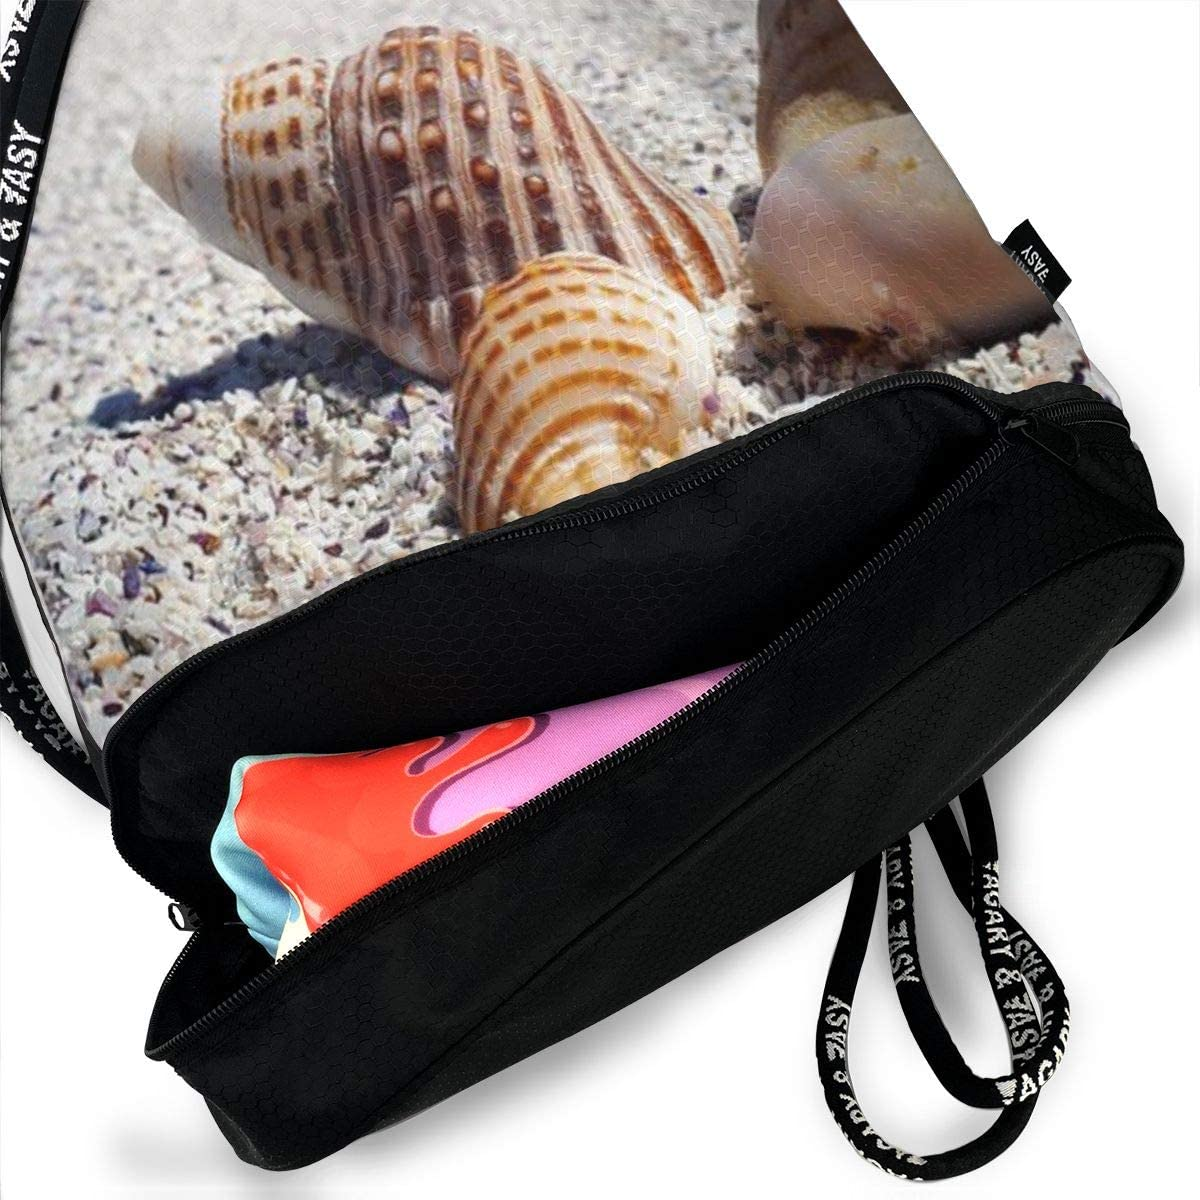 Beauty Seashells Print Drawstring Bag Backpack Sport Travel Gym School Hiking Yoga Beach Cinch Bags Bundle Backpack For Women//Men